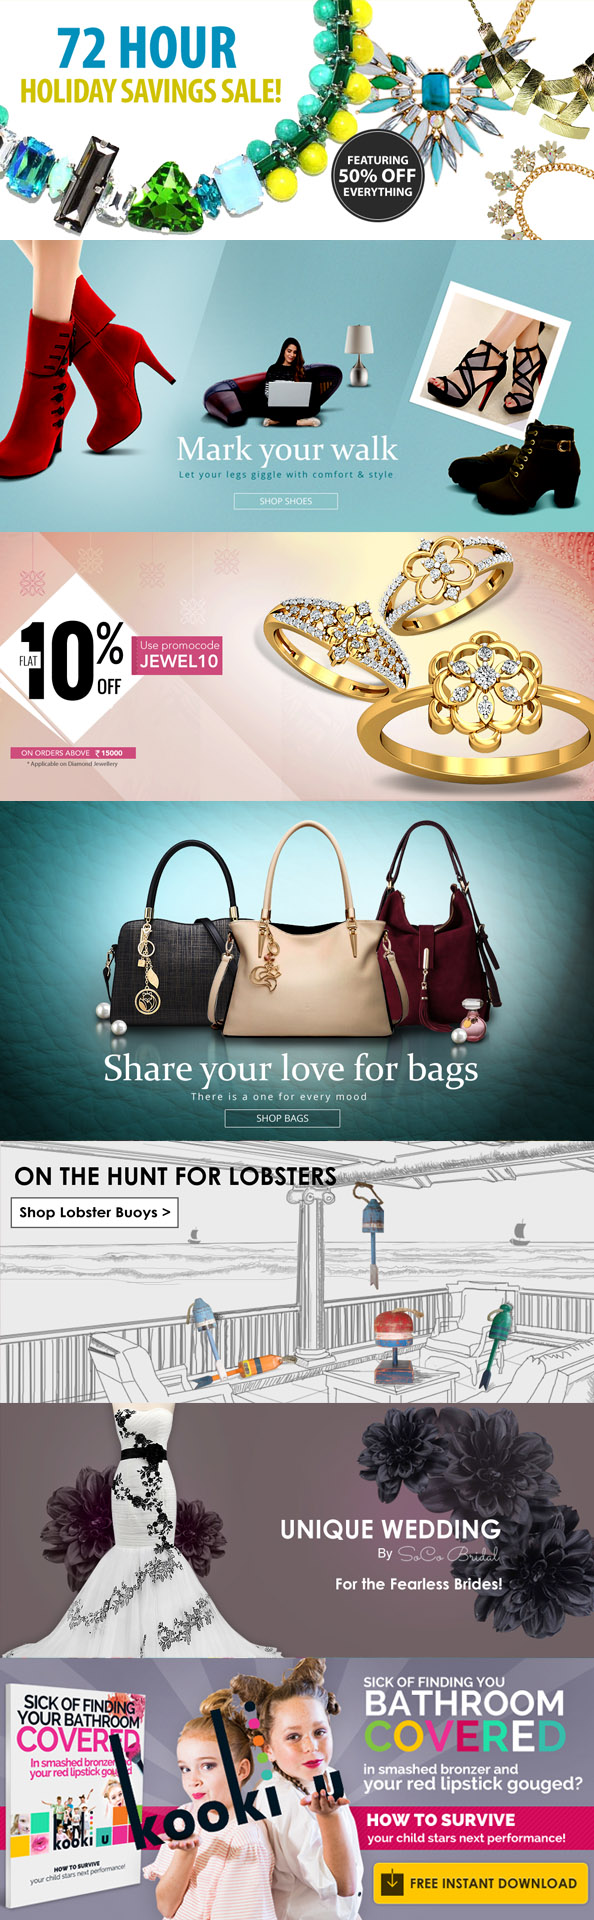 Ecommerce banner for retail stores